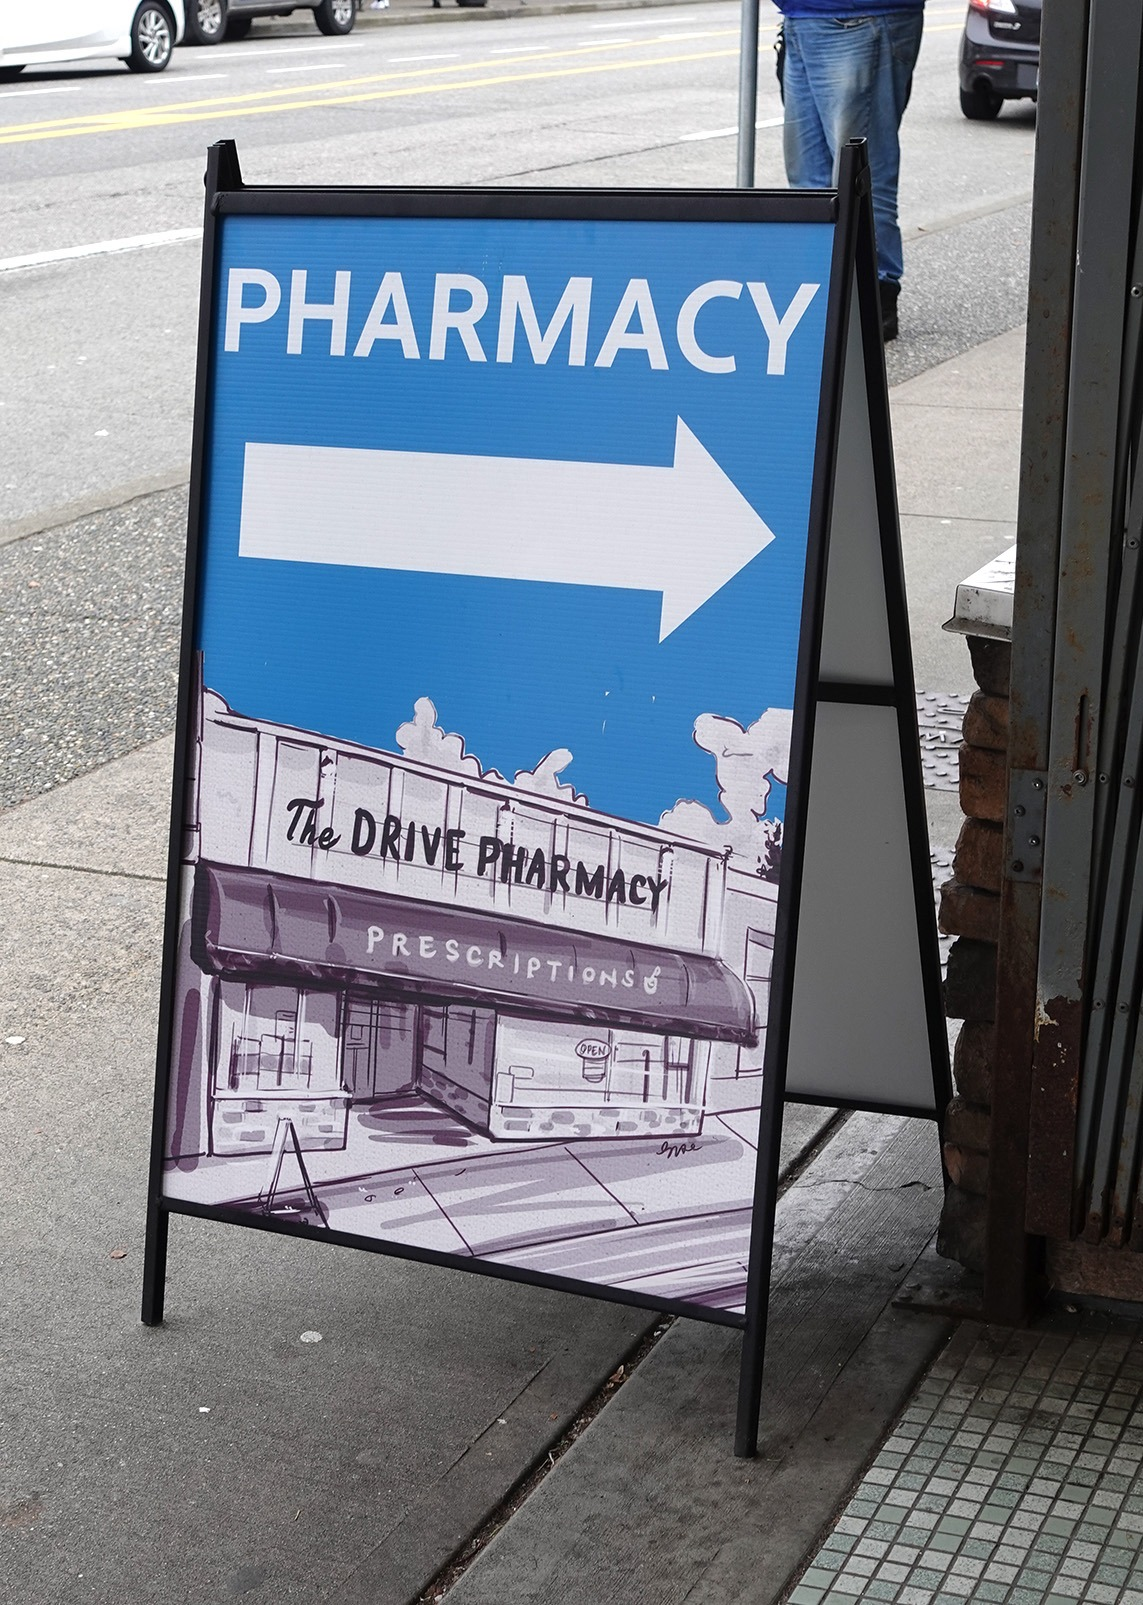 Painting on Sandwich Board for The Drive Pharmacy